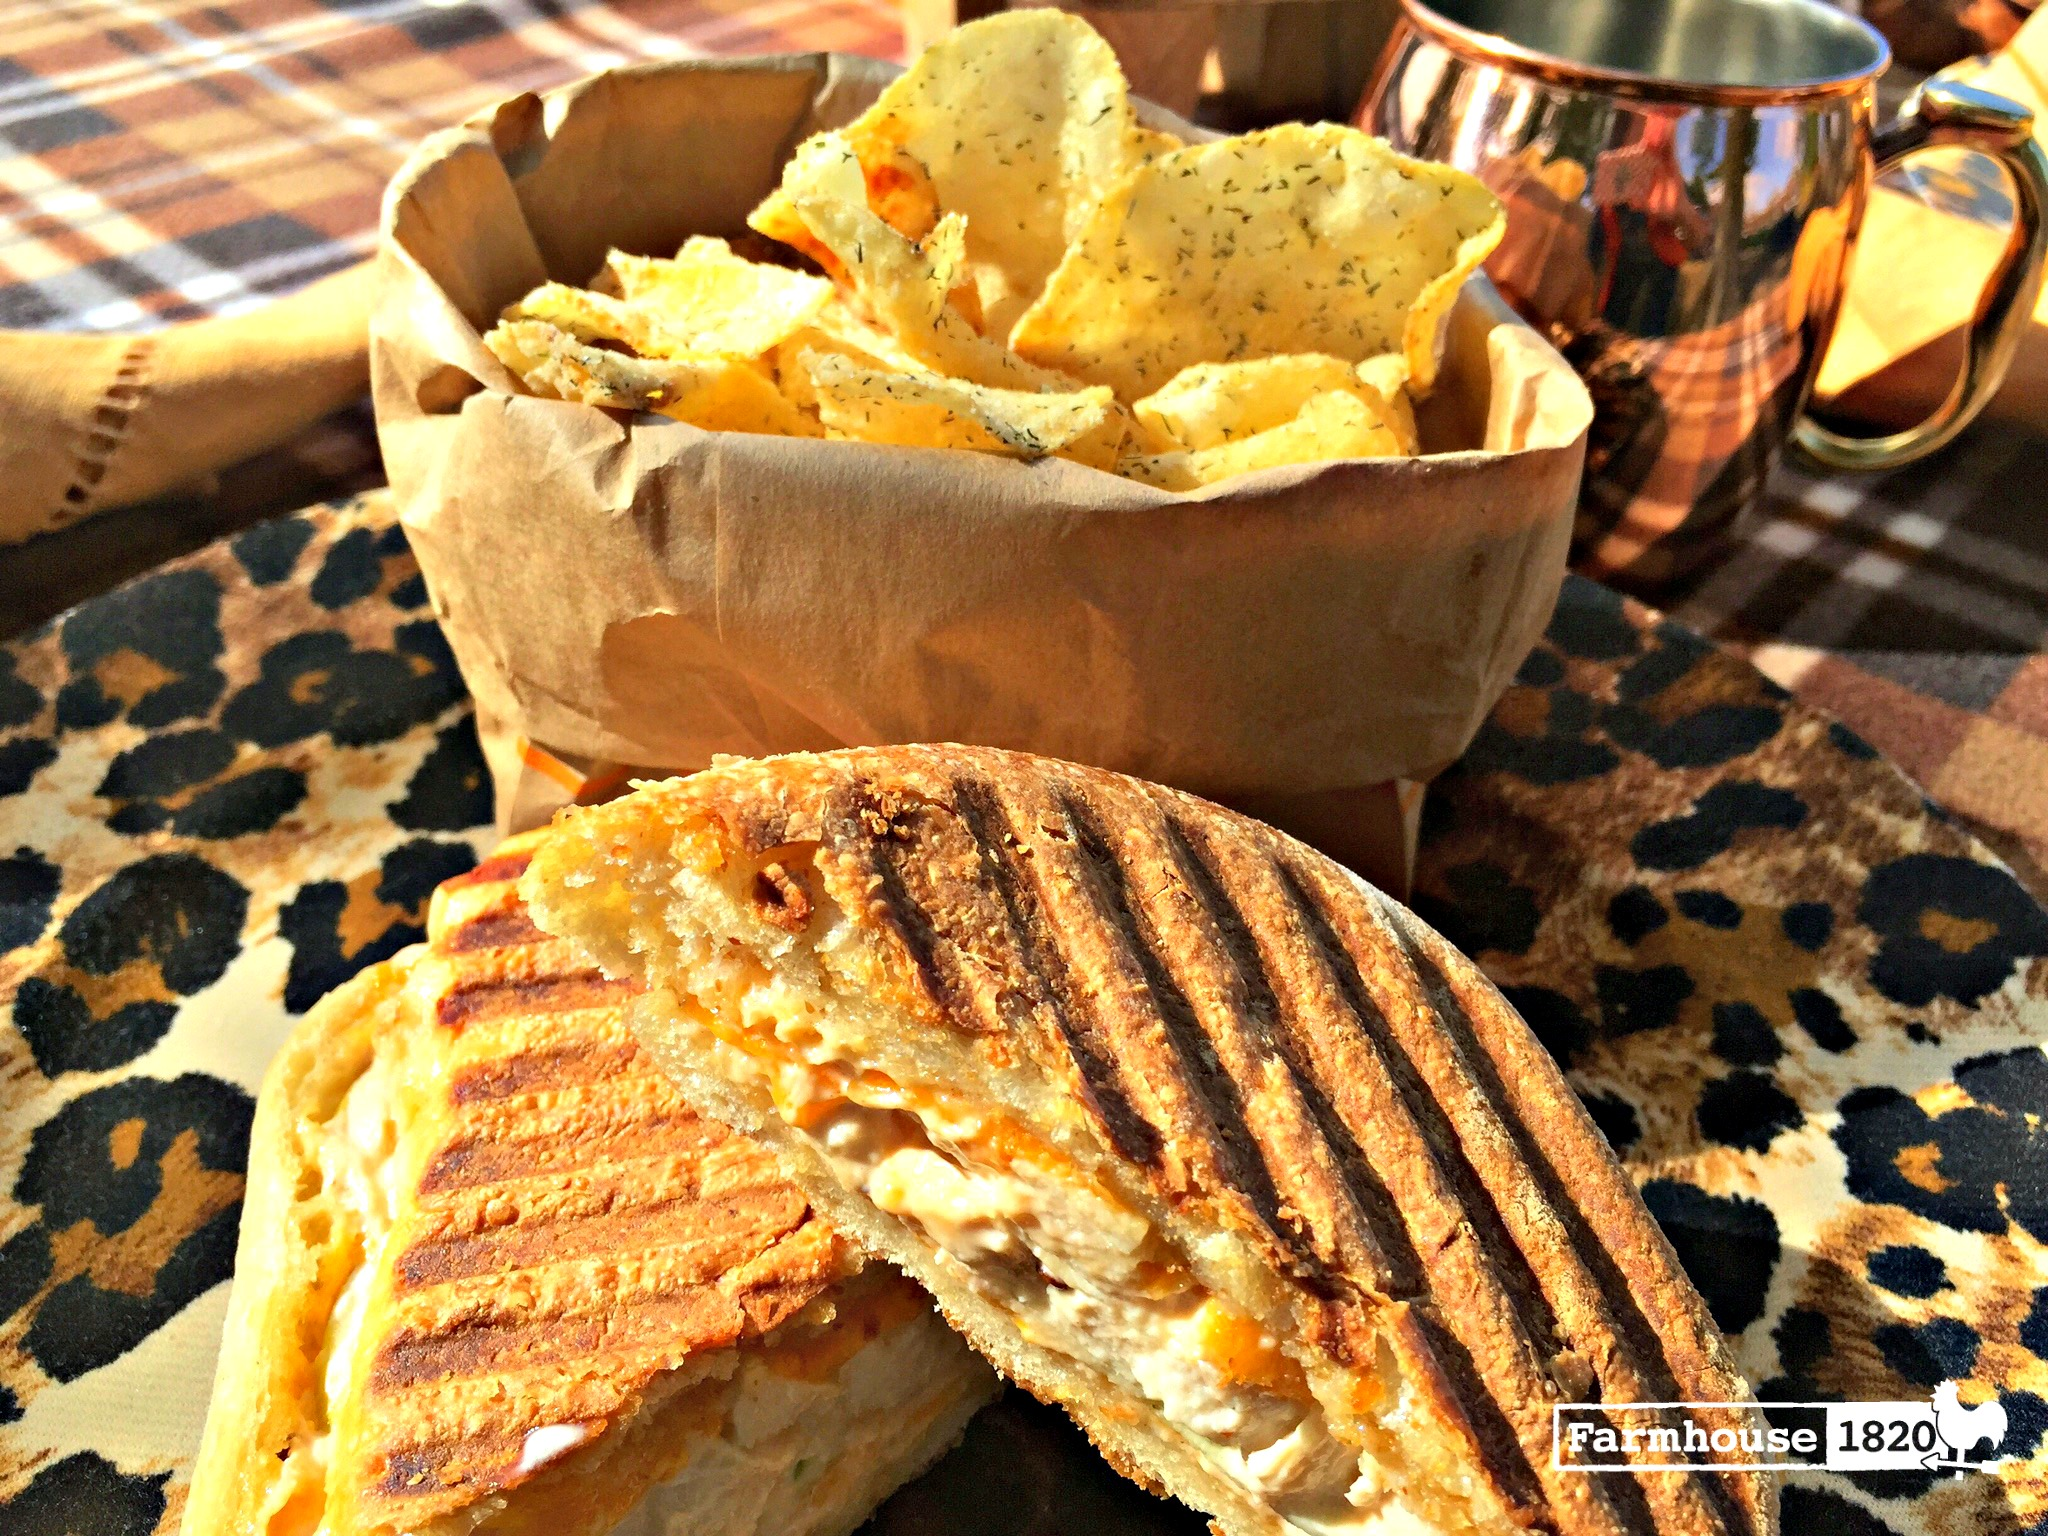 picnic - grilled chicken panini with chips - perfect picnic food